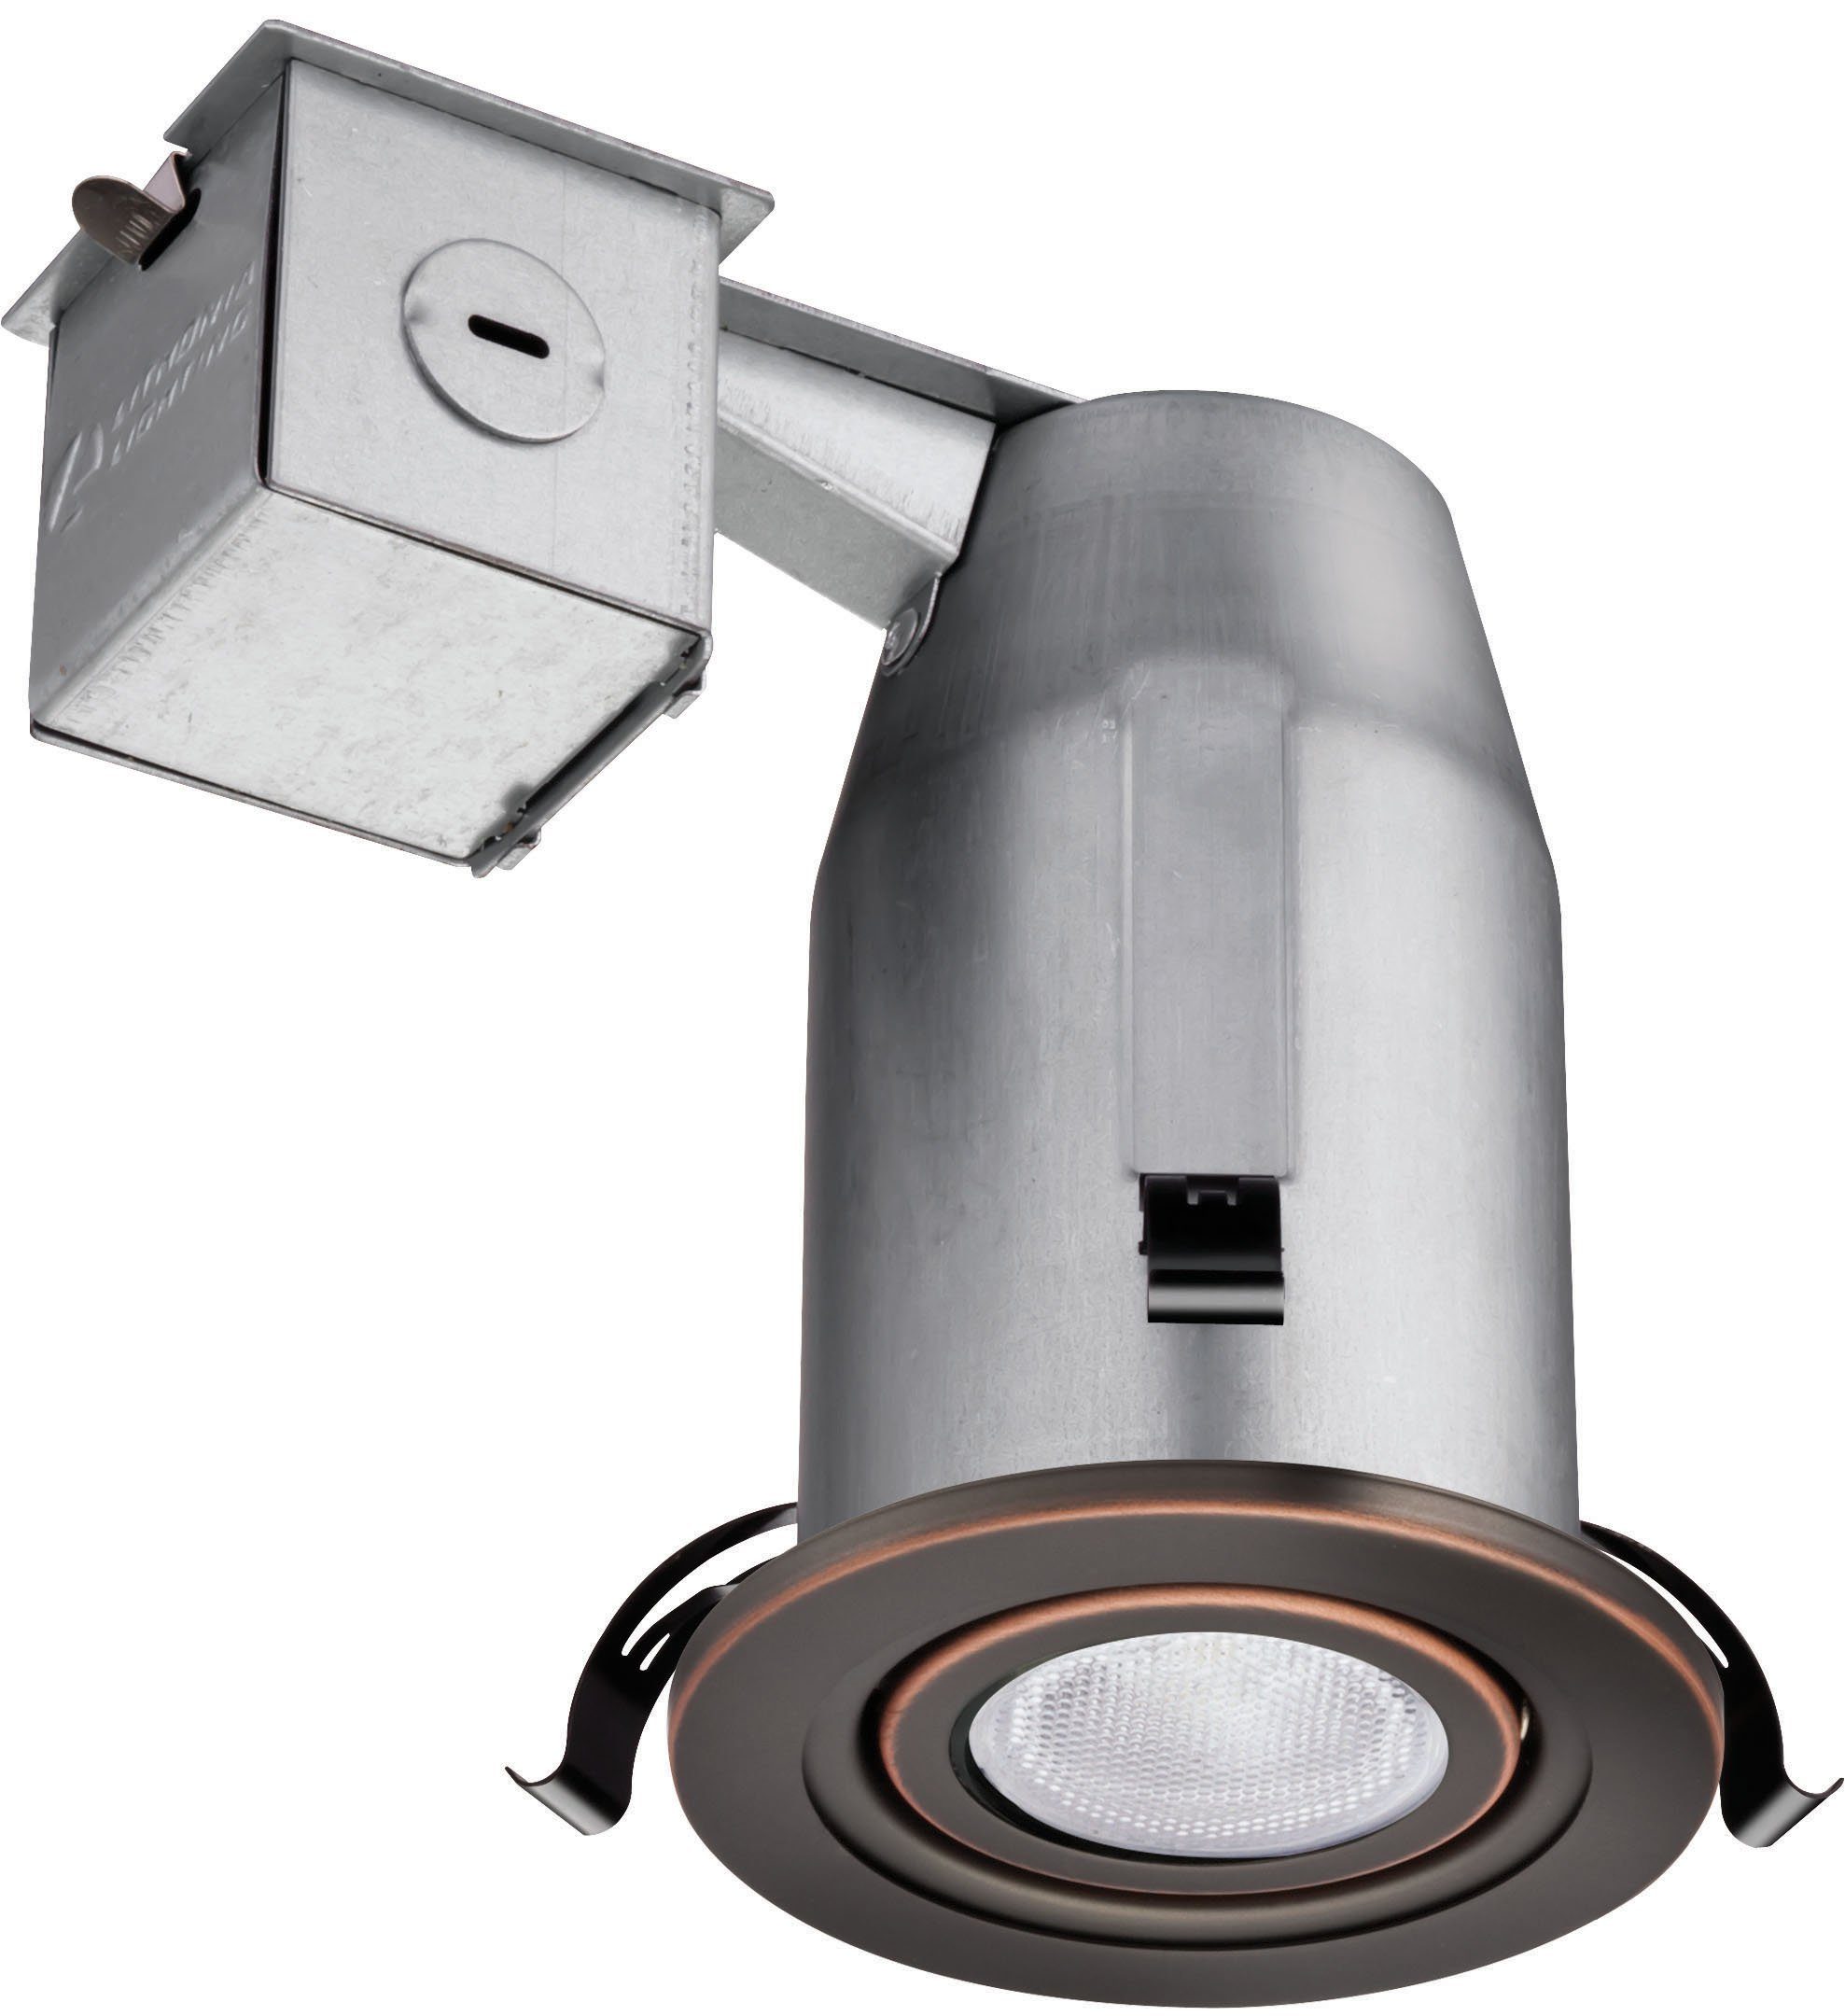 Lithonia Lighting LK3GORB LED LPI M6 3 Inch Gimbal Kit with LED Lamp Included in Bronze by Lithonia Lighting